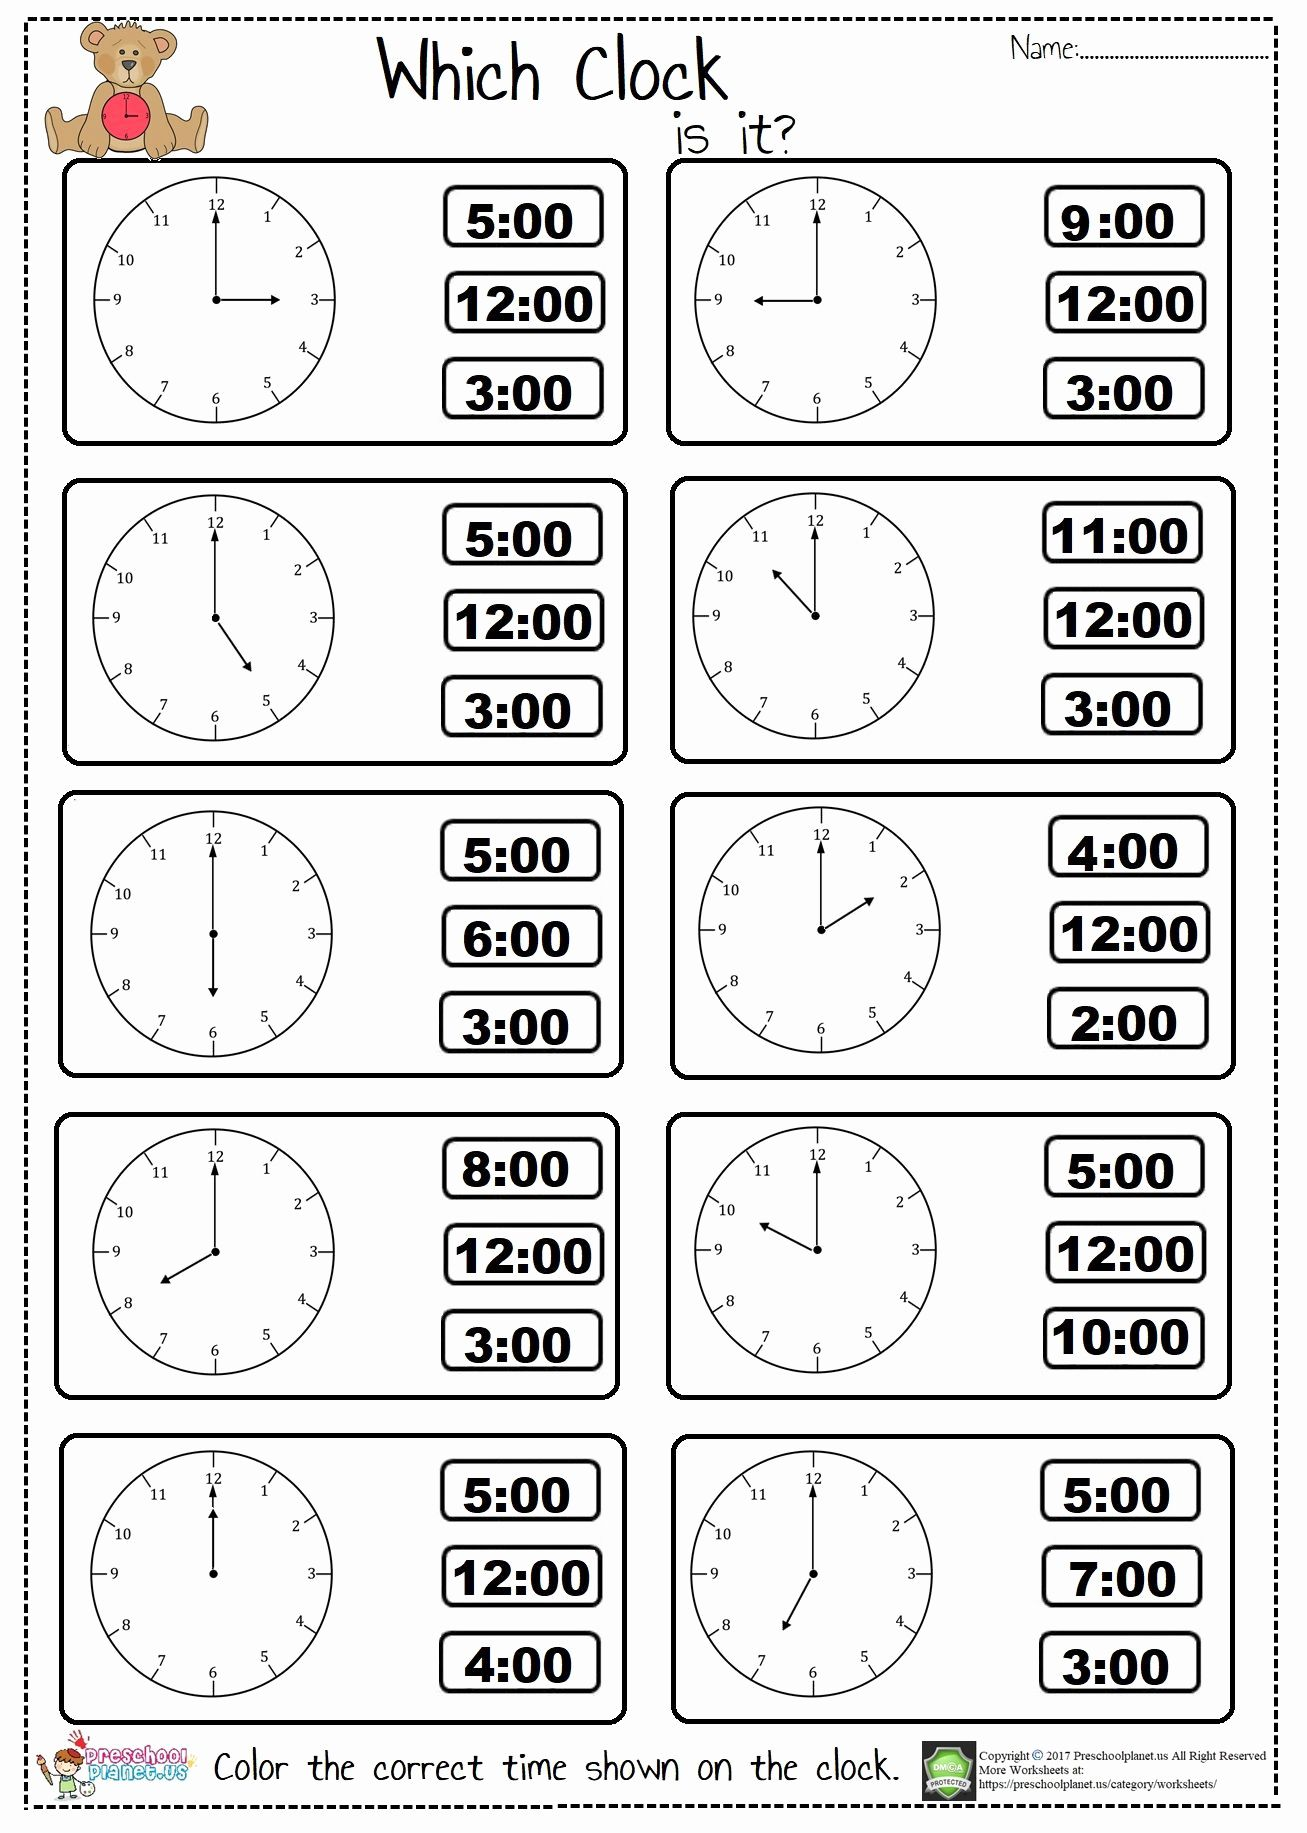 Preschool Clock Worksheet In